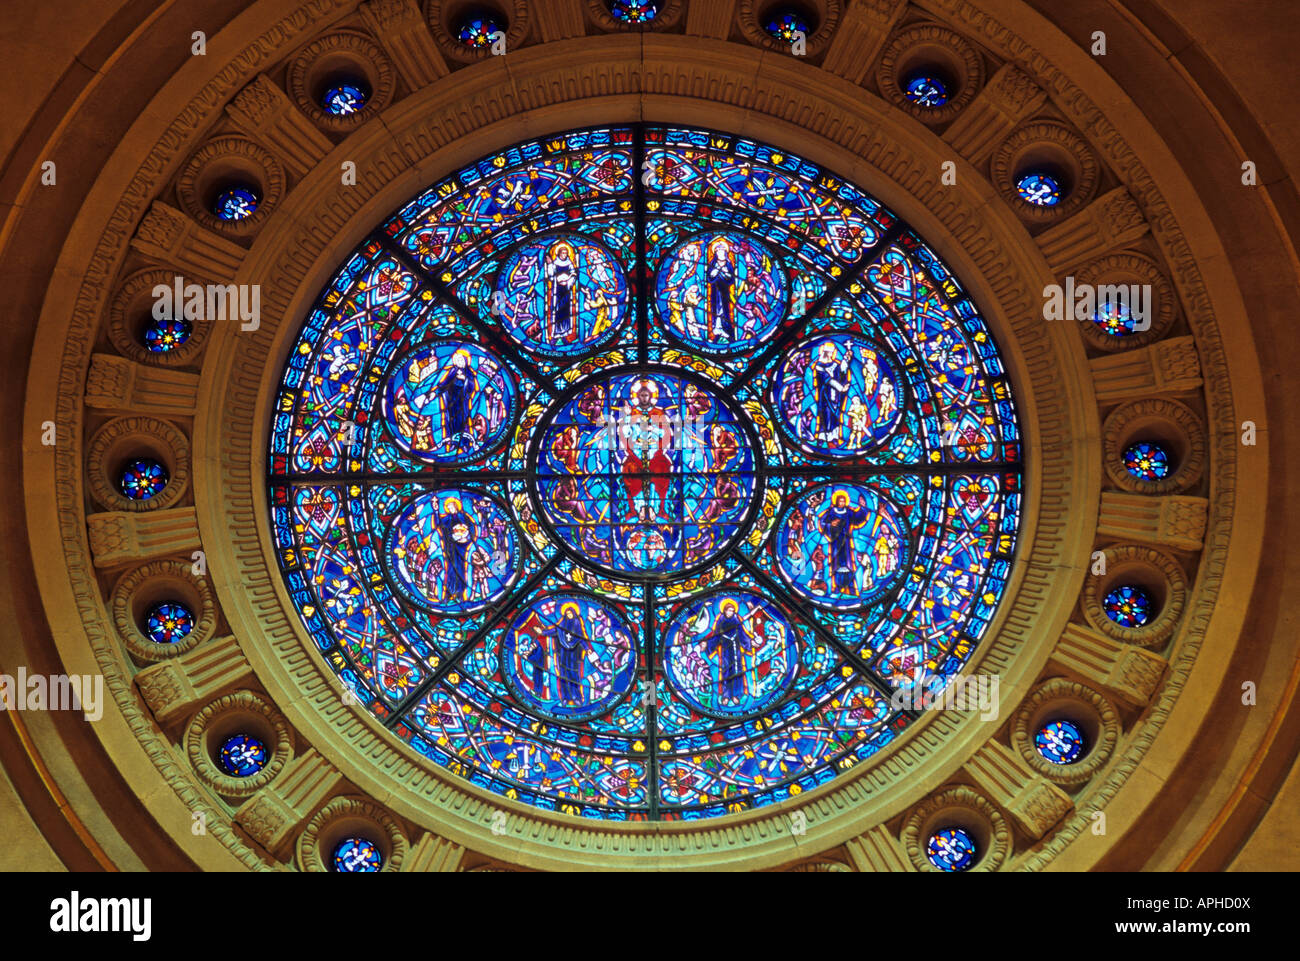 CIRCULAR STAINED GLASS WINDOW IN SAINT PAUL CATHEDRAL ST